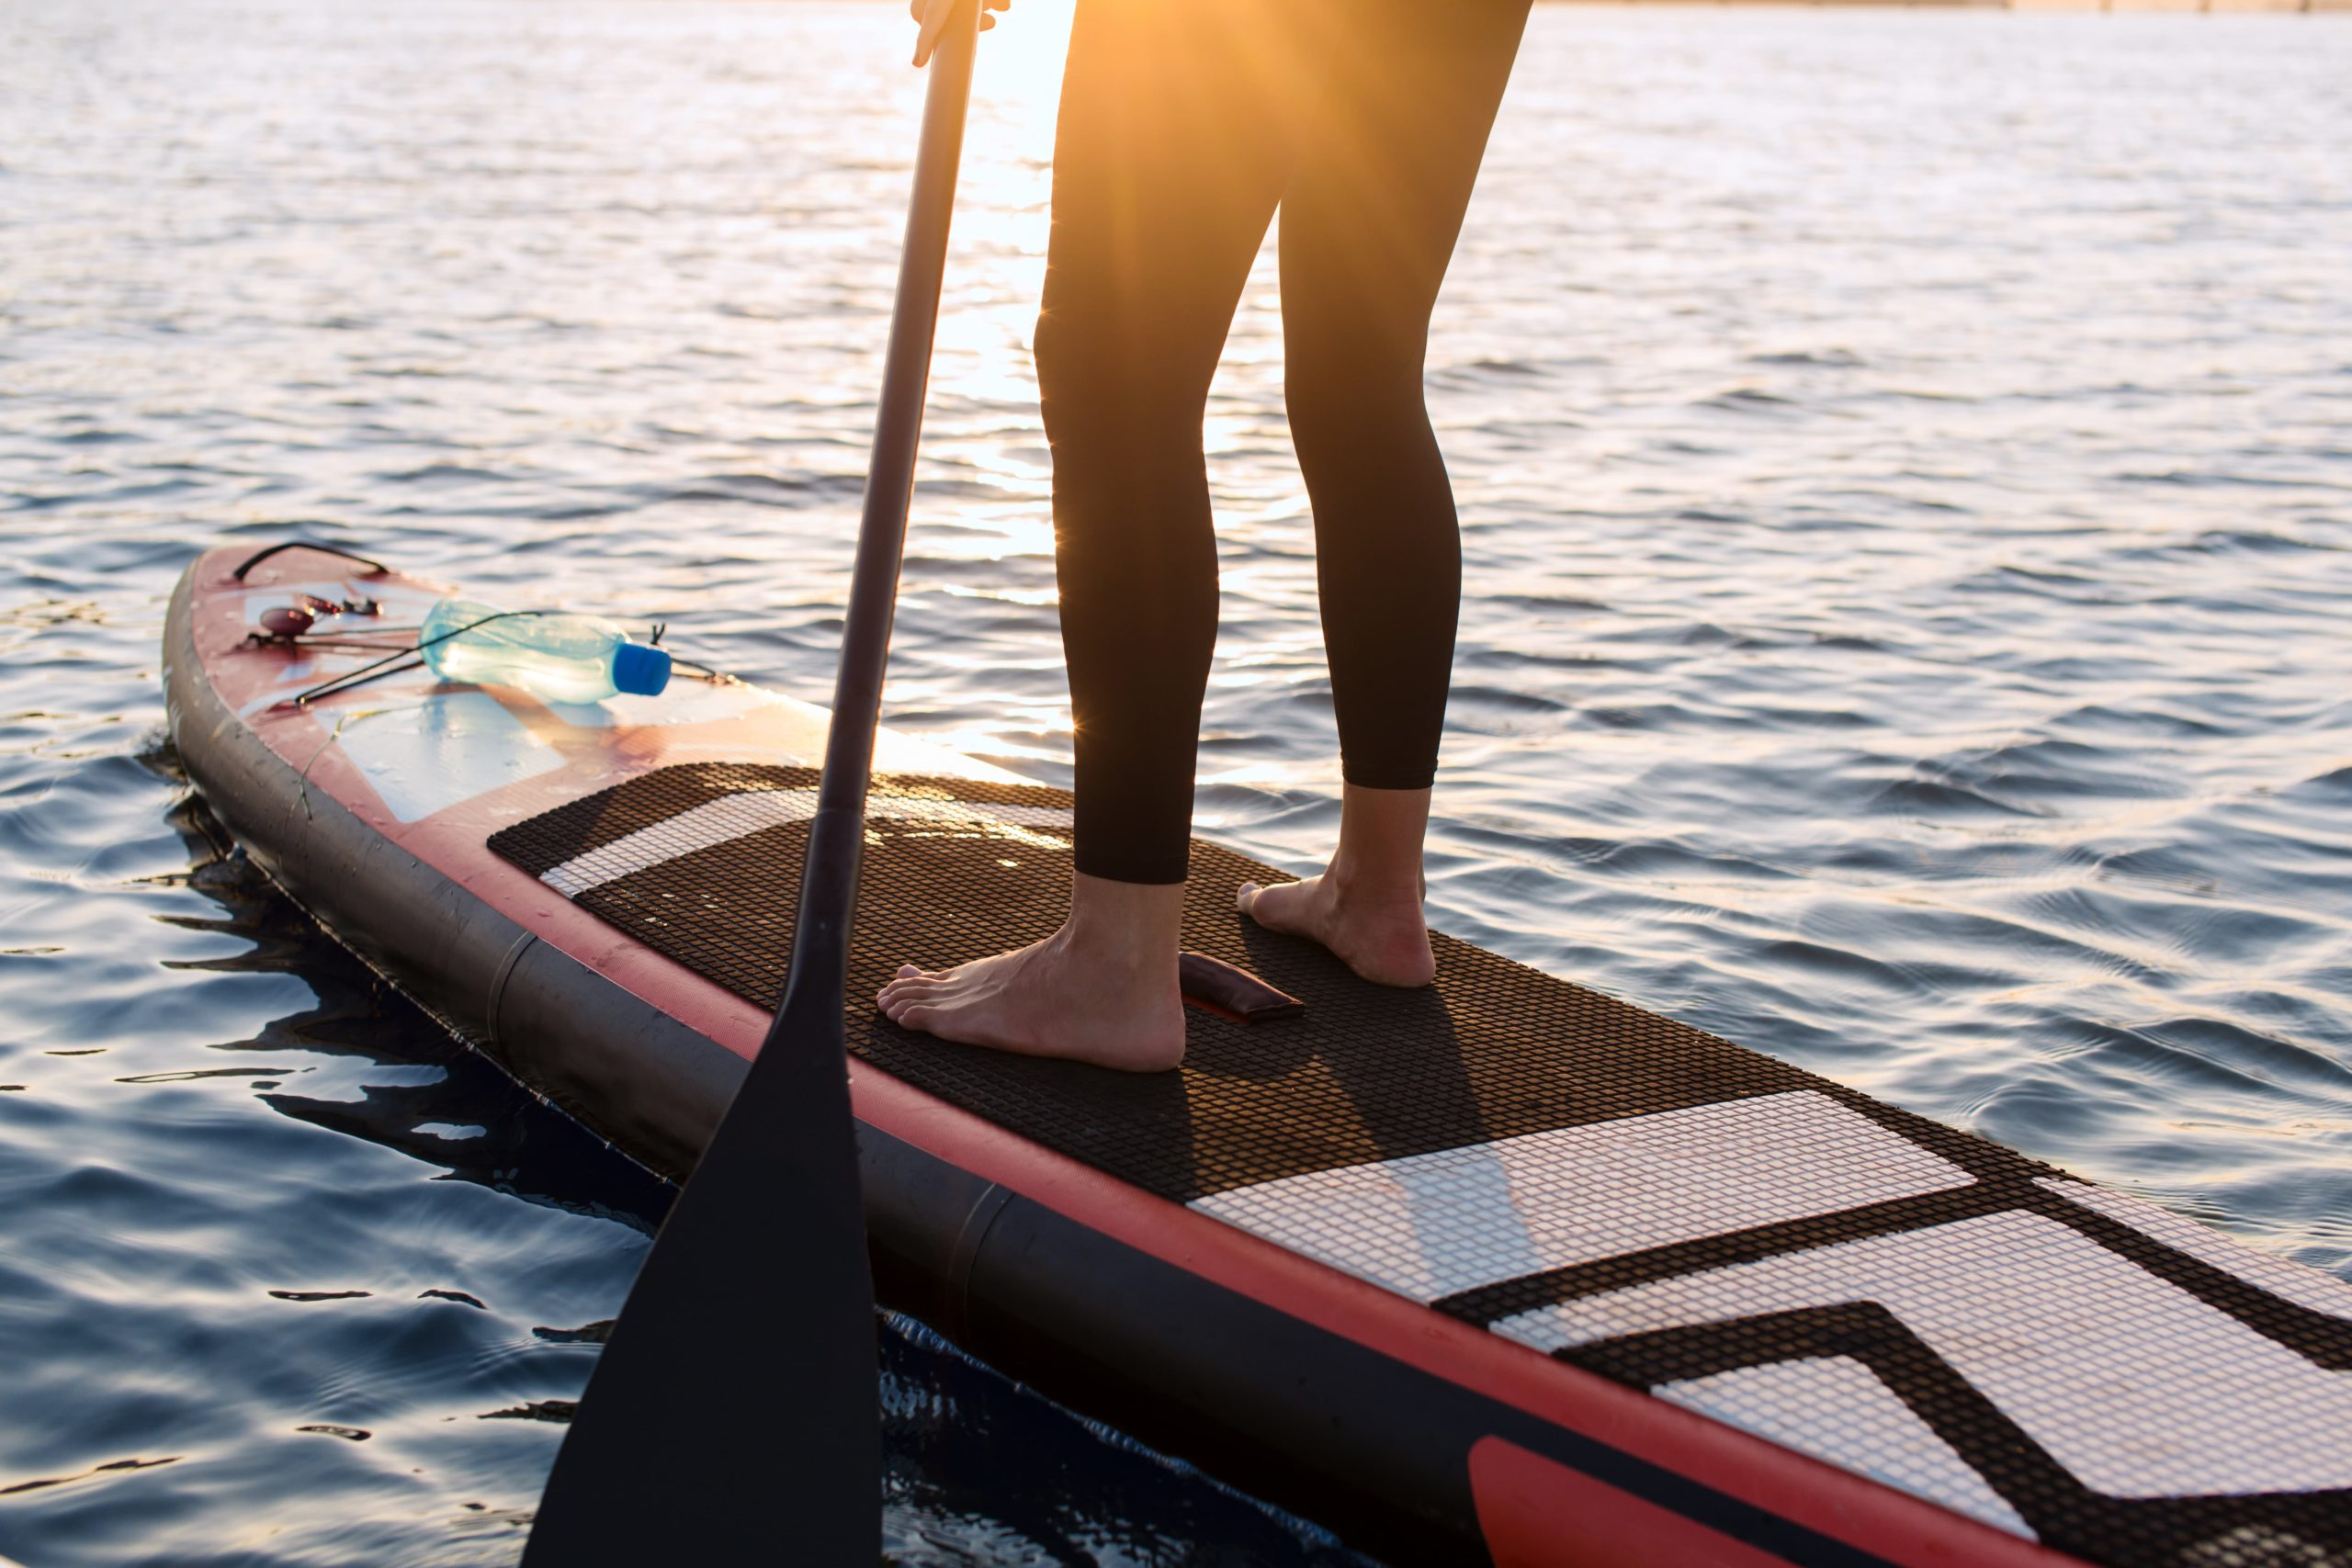 Feet placement Improving Your Paddle Strokes